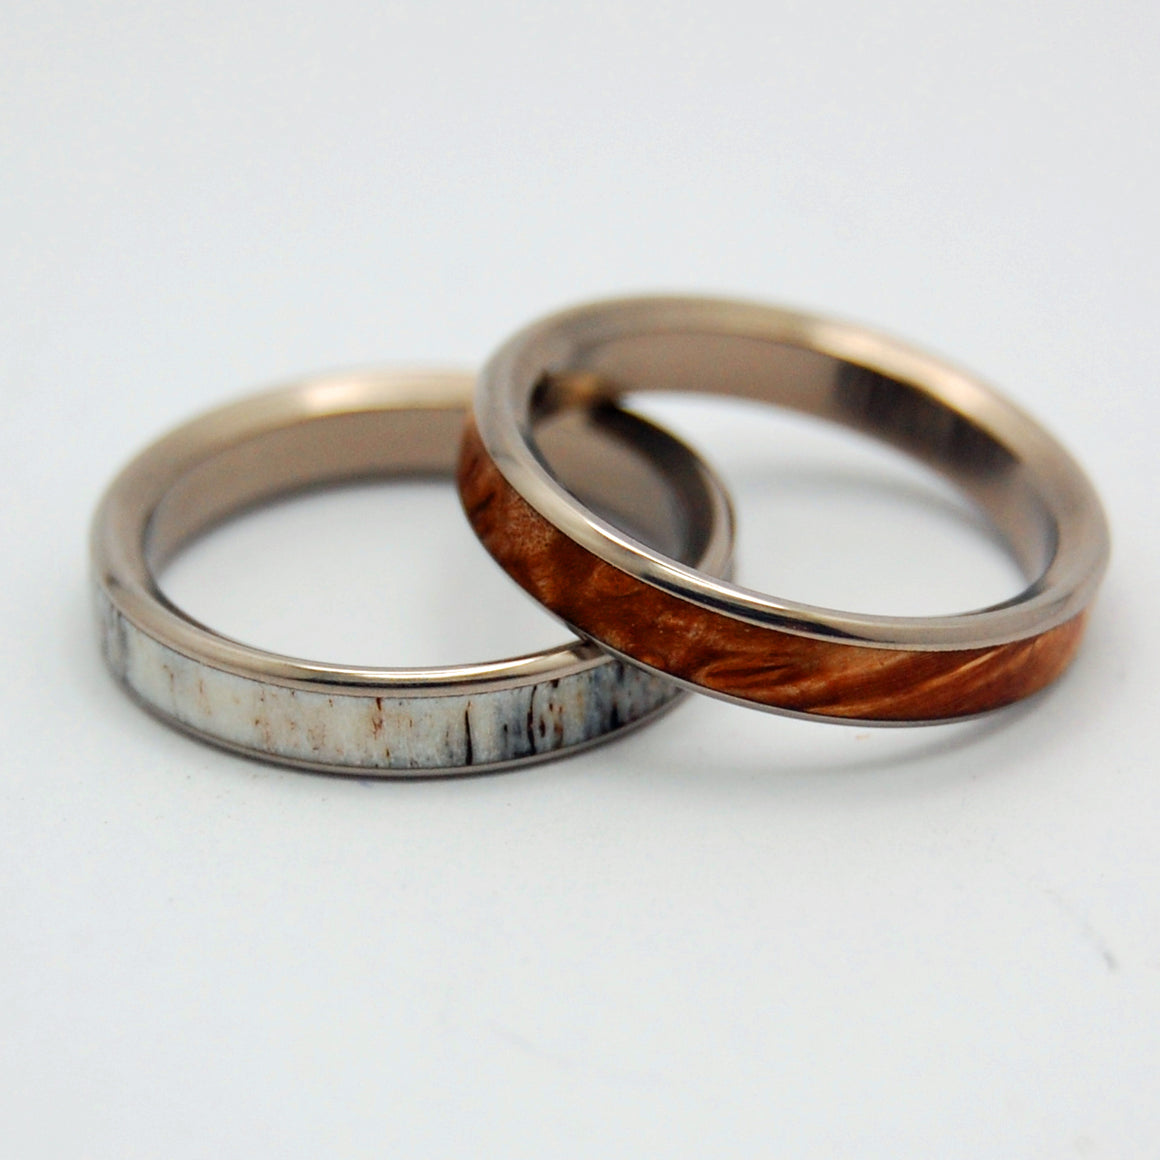 FOREST FRIENDS | Moose Antler & Maple Wood - Wooden Wedding Rings Set - Minter and Richter Designs